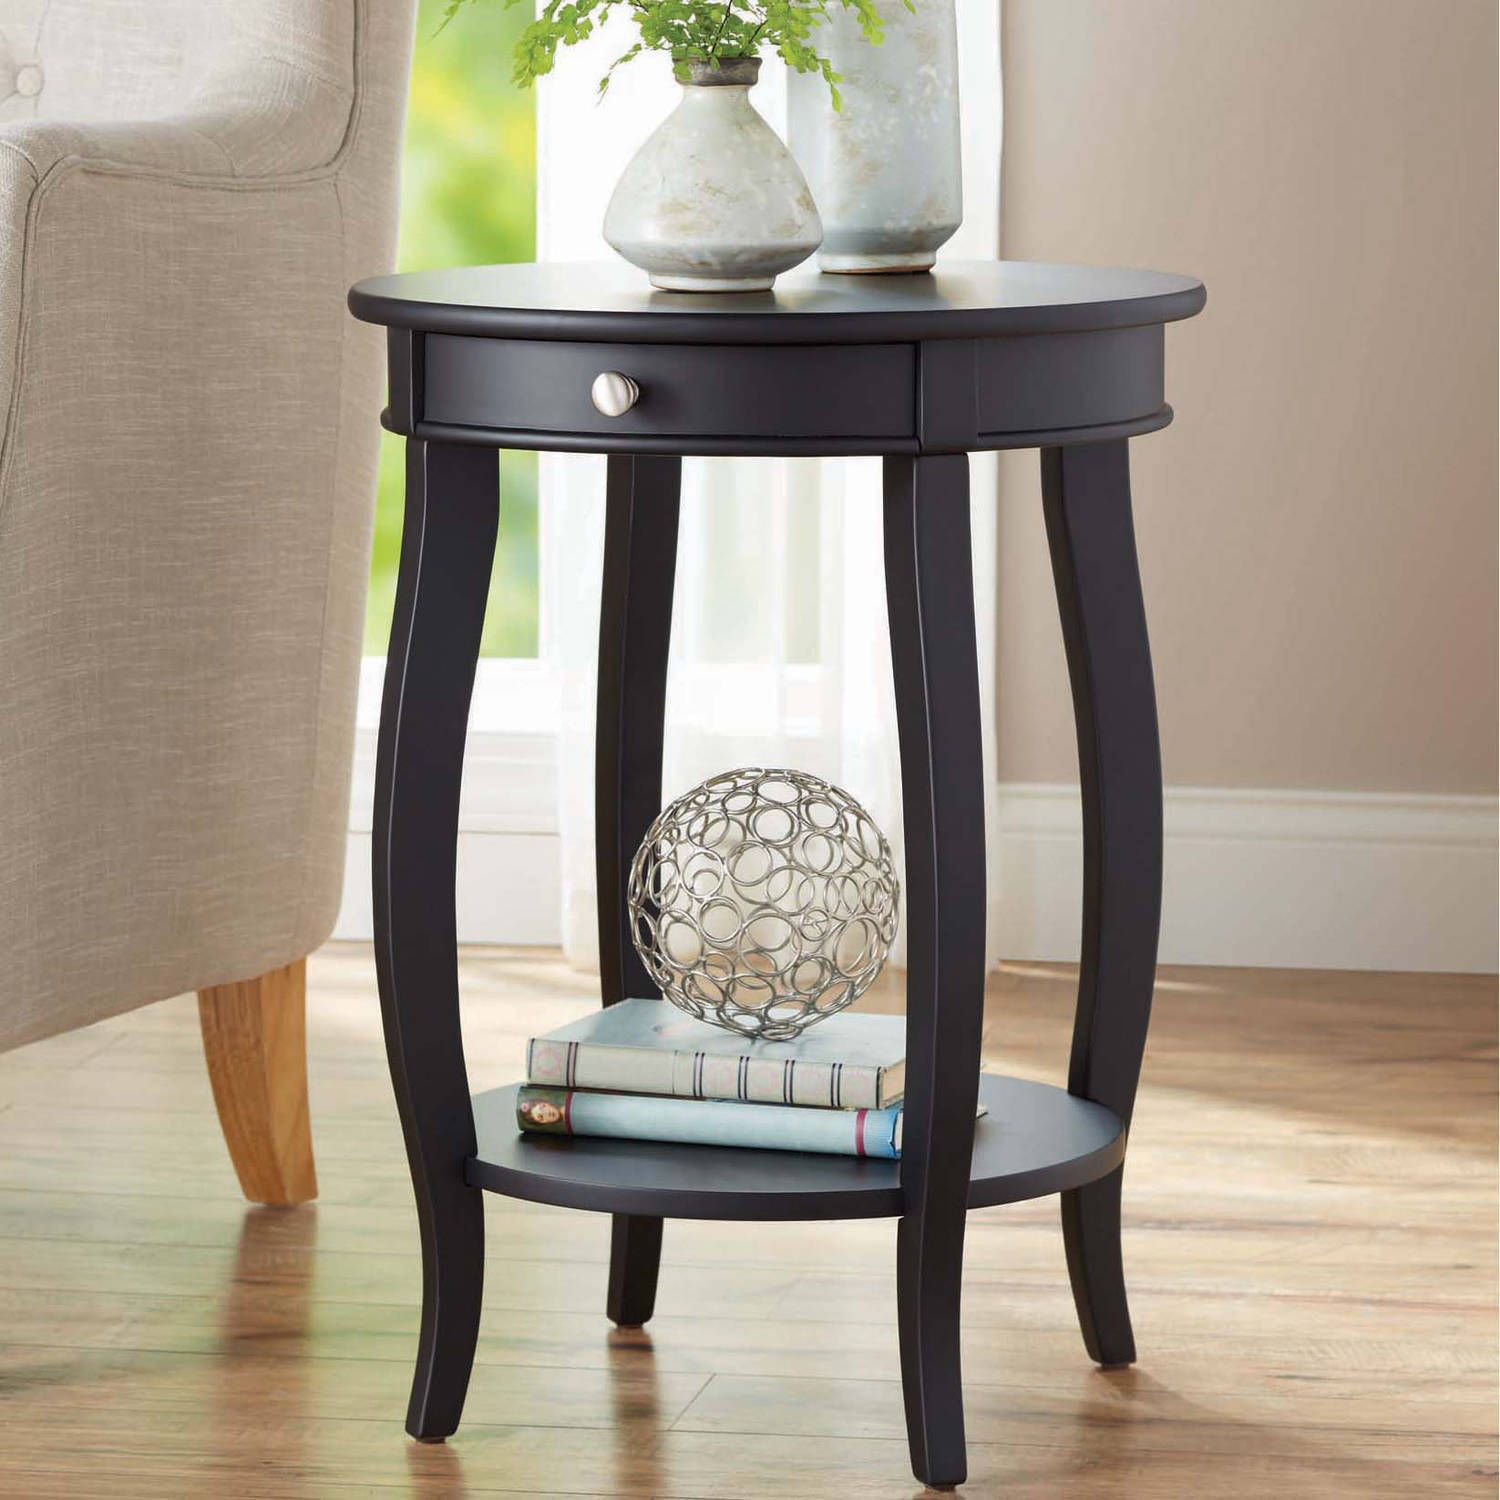 Better Homes Gardens Round Accent Table With Drawer Black Walmart Com Round Accent Table End Tables With Drawers Small Accent Tables